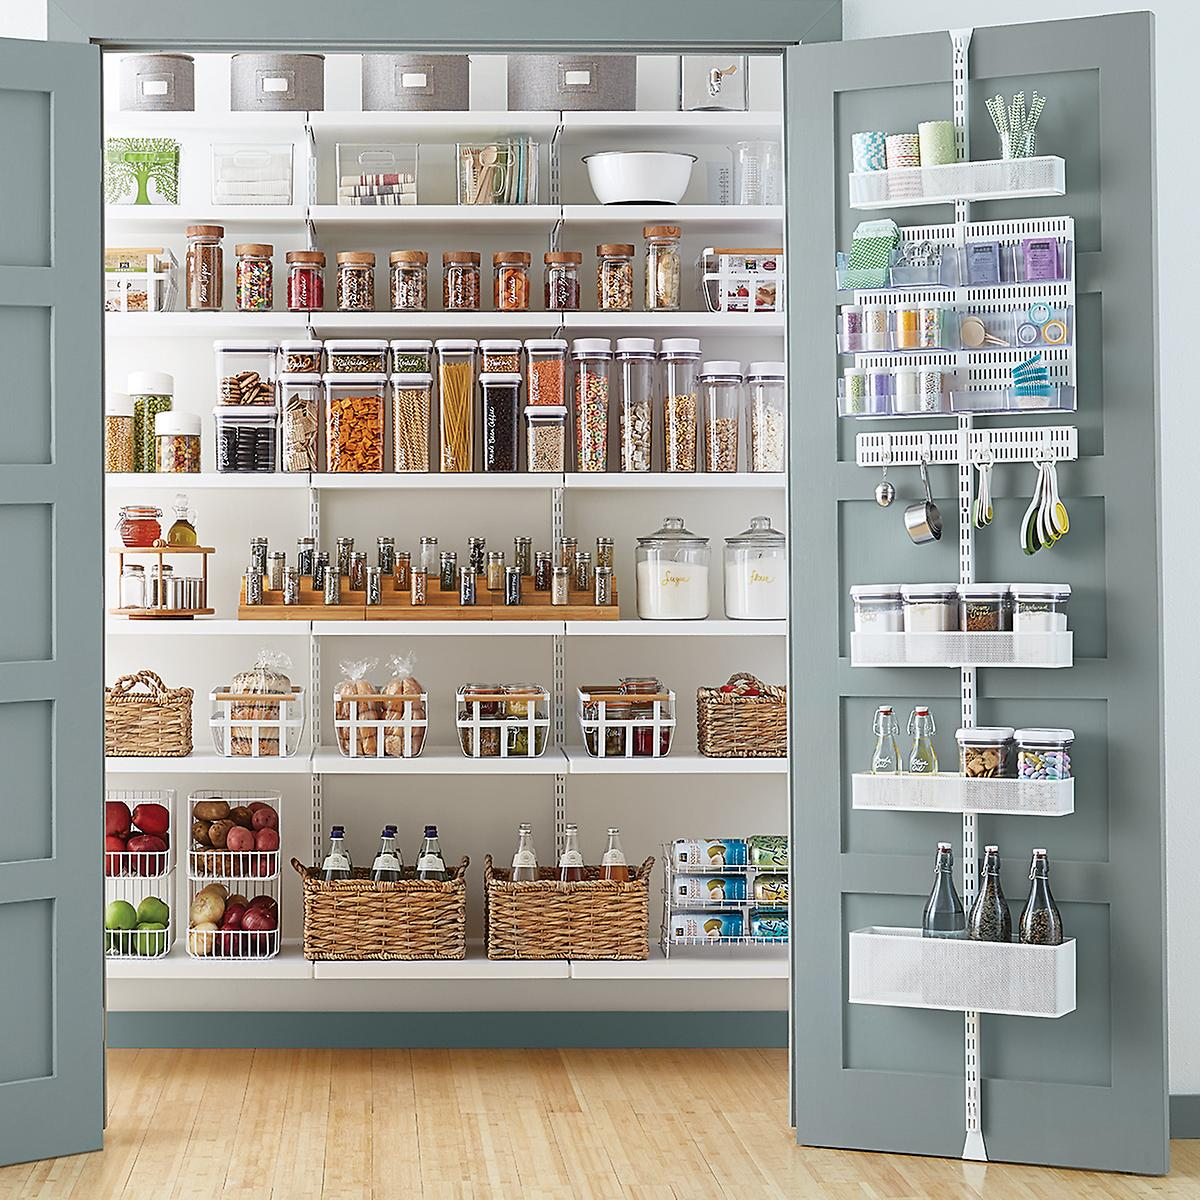 11 Of The Best Kitchen And Pantry Organization Products